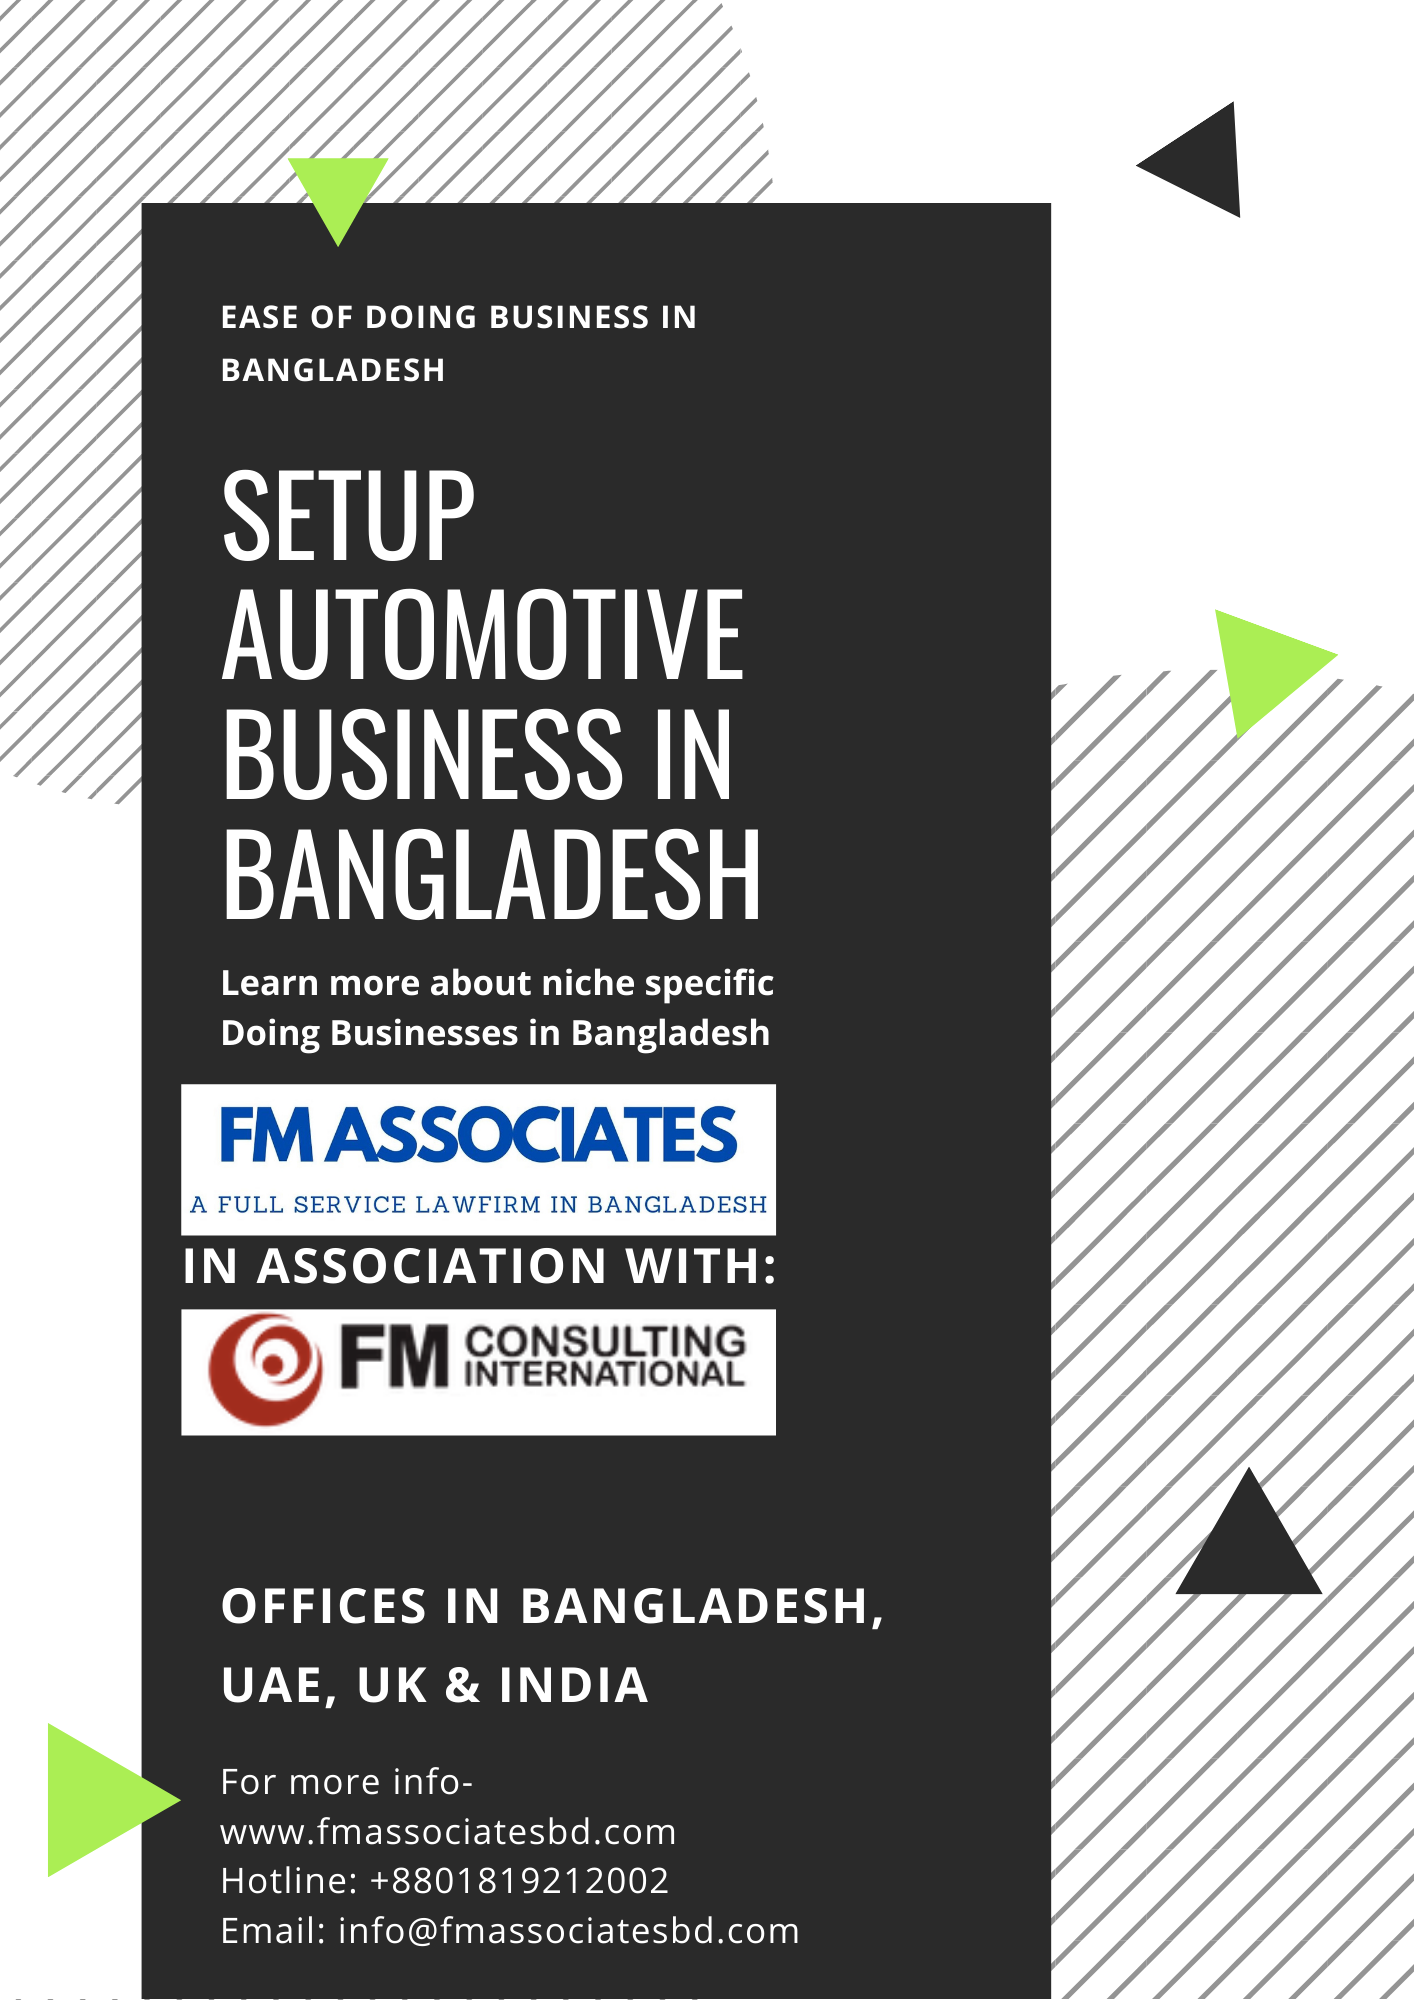 How to Setup Automotive Business in Bangladesh